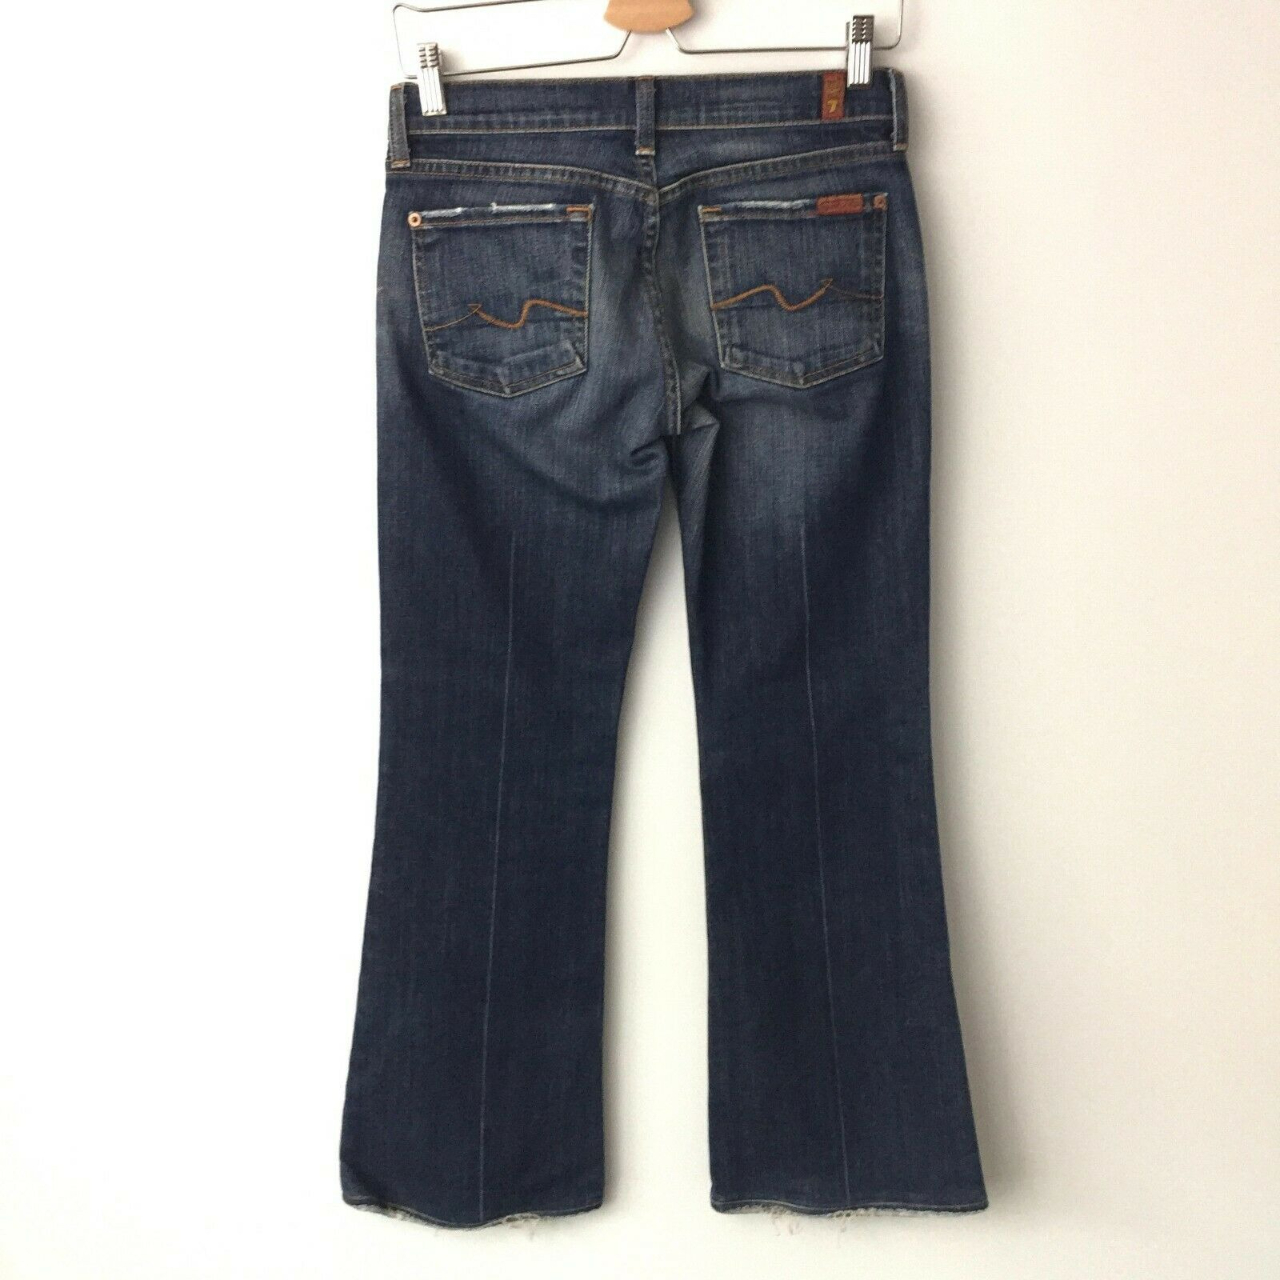 Product Image 1 - 7 For All Mankind Women's